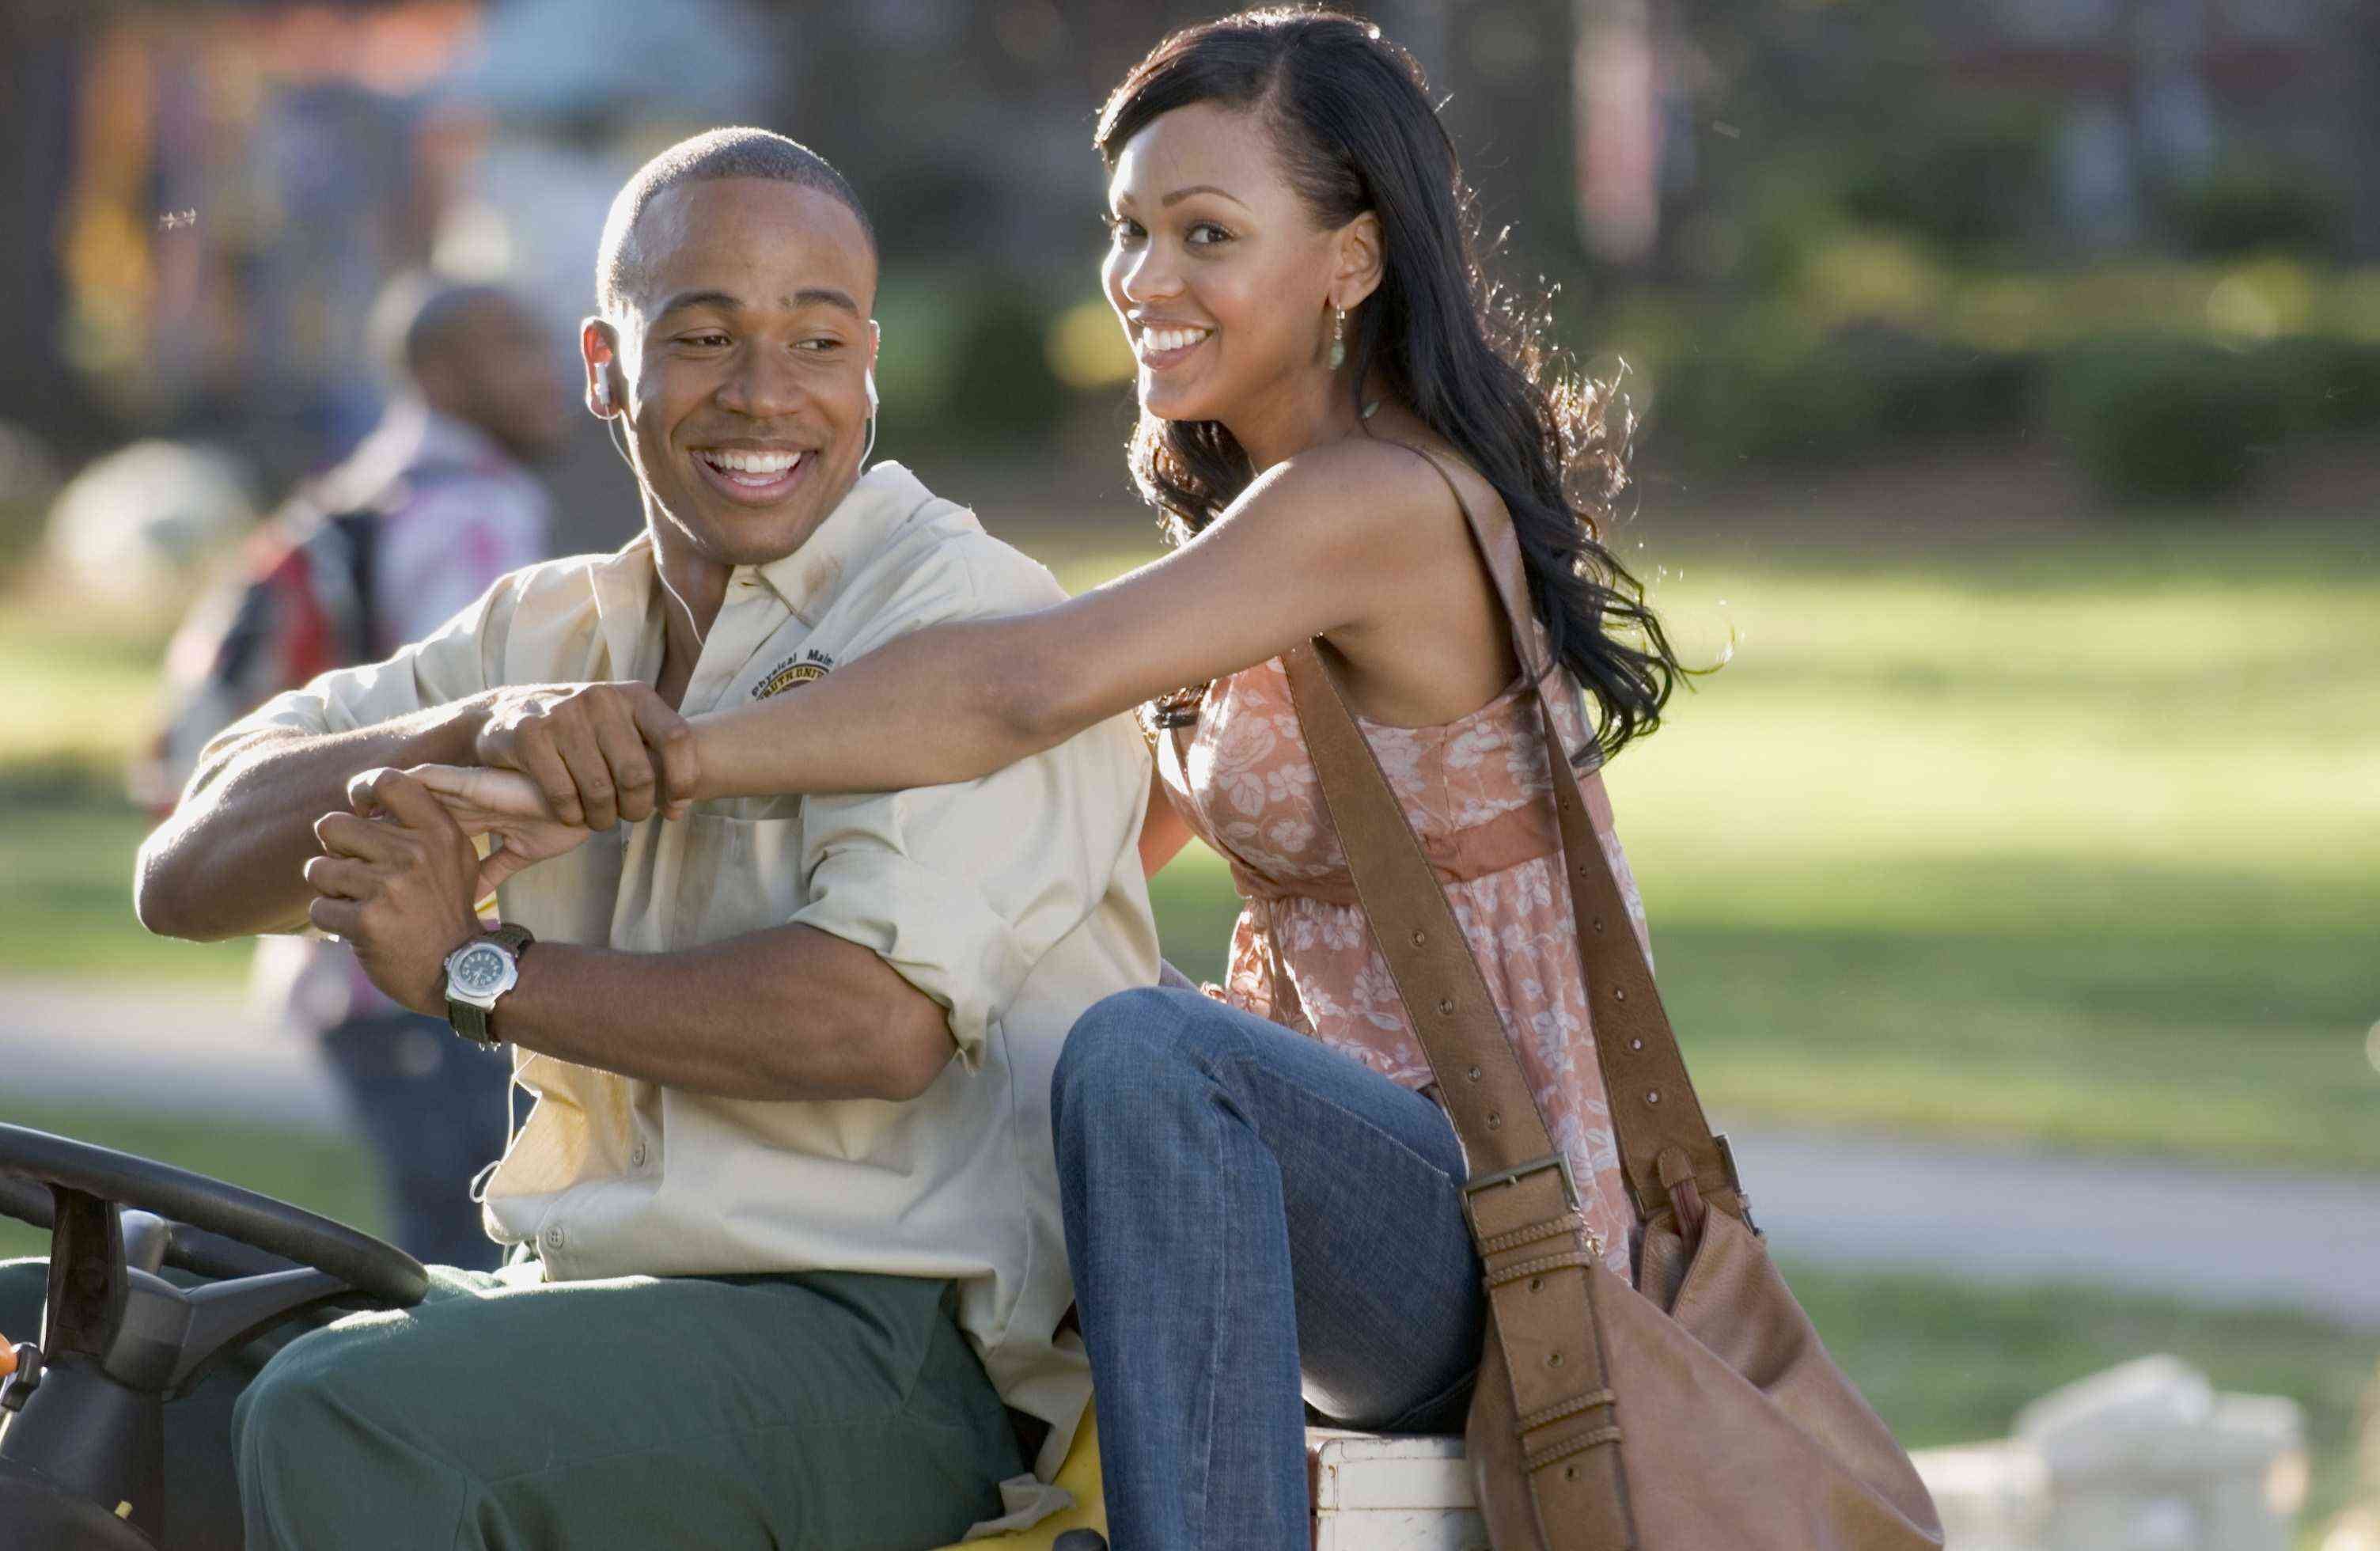 COLUMBUS SHORT as DJ and MEAGAN GOOD as April in Screen Gems' STOMP THE YARD.